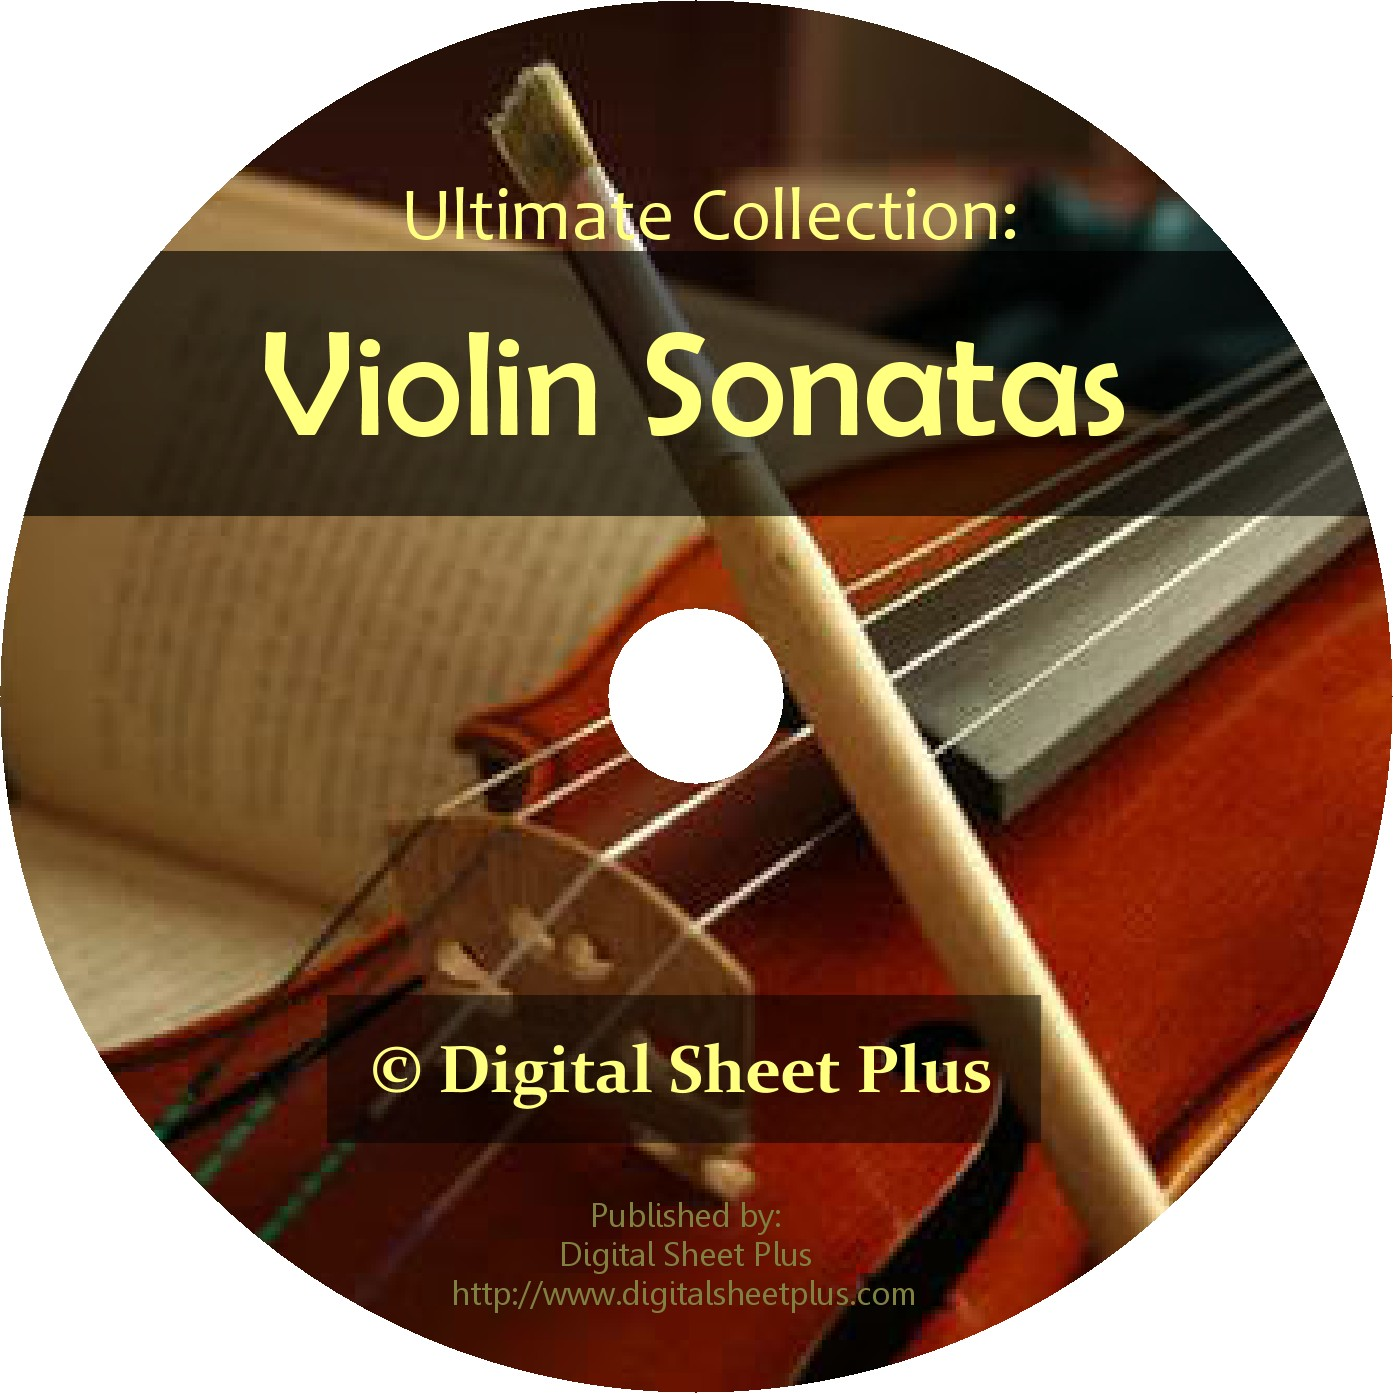 violin_sonatas_cd_cover.jpg